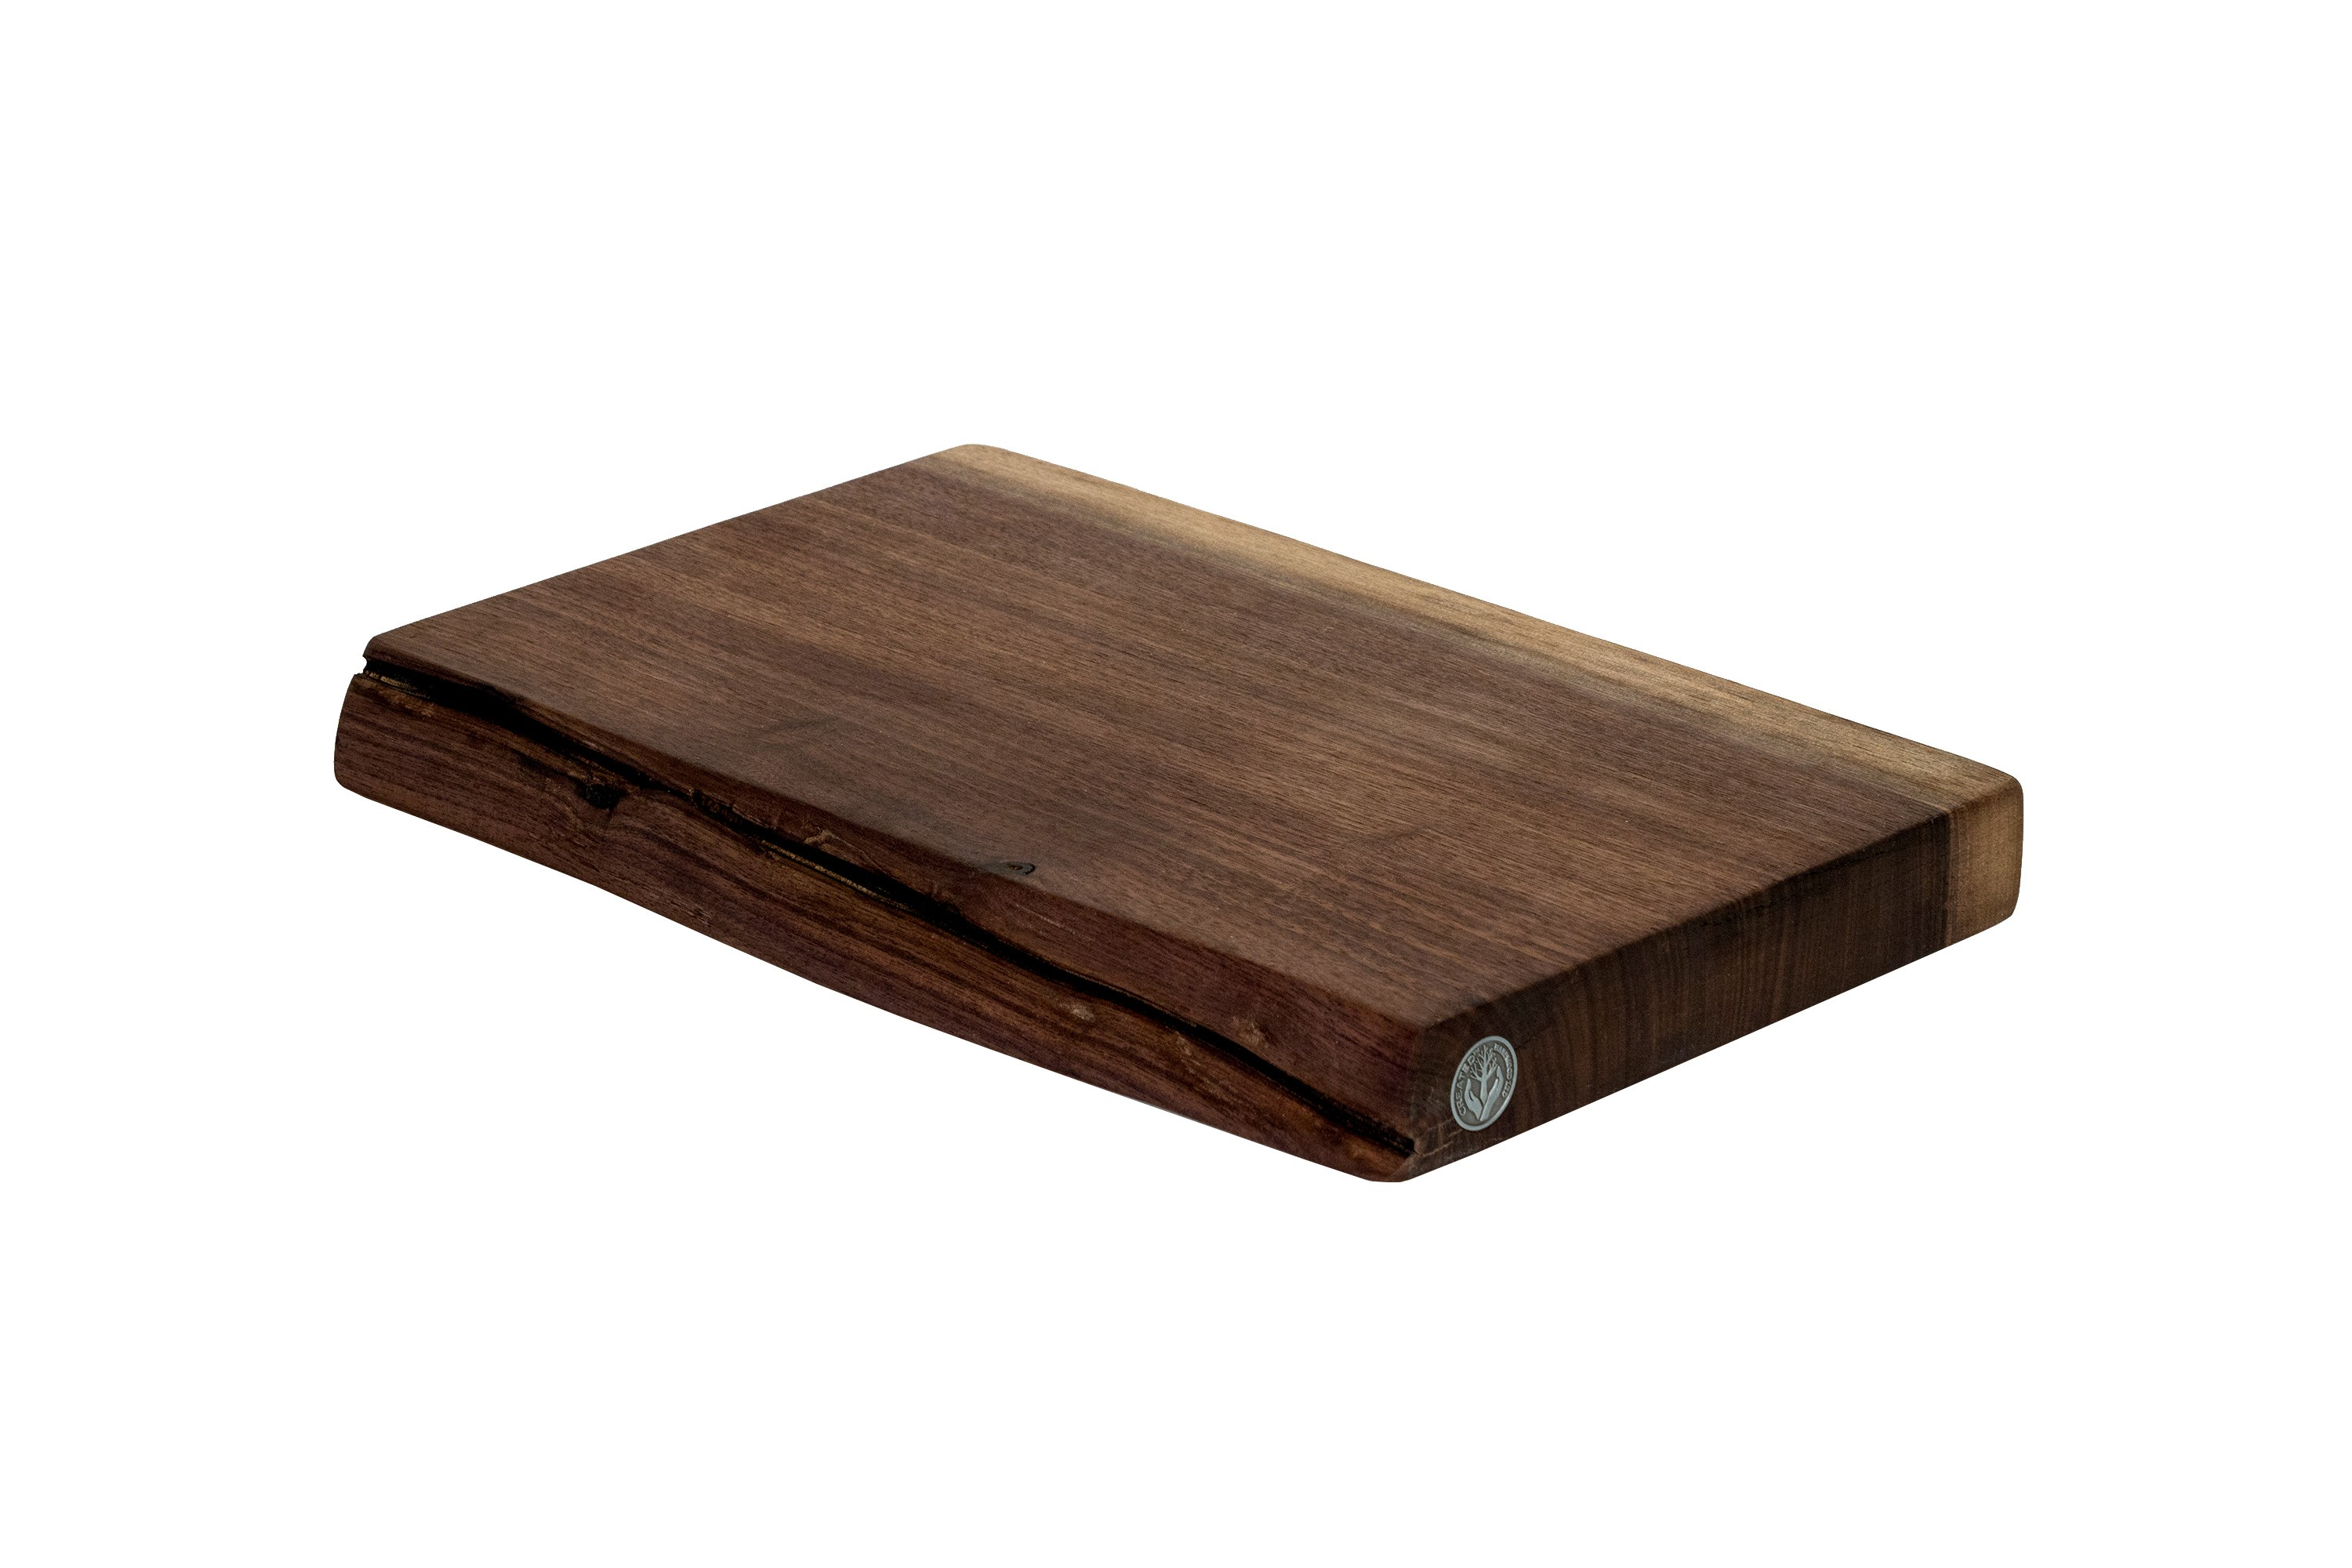 Live Edge Walnut Cutting Board #027 - 16.5